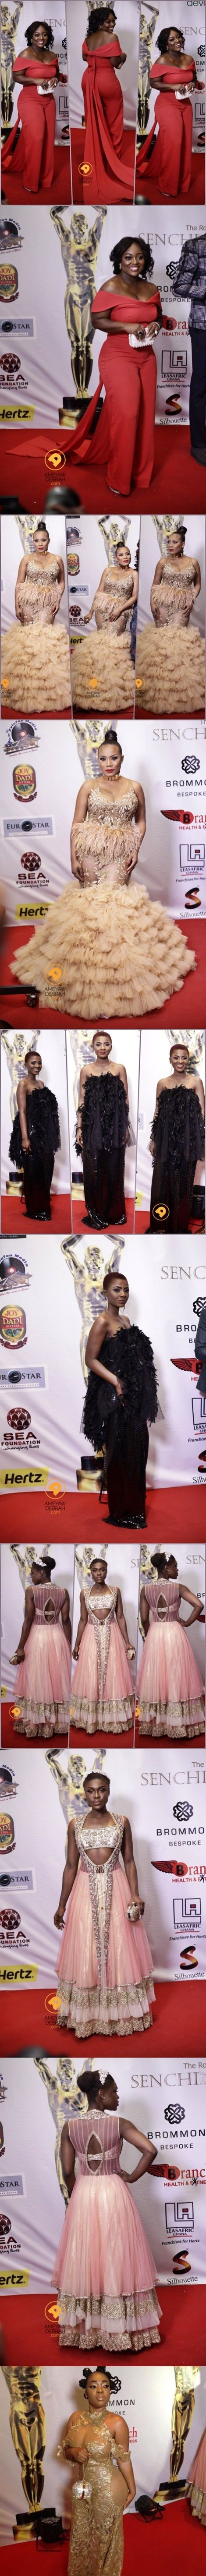 ghanan-movie-awards-7